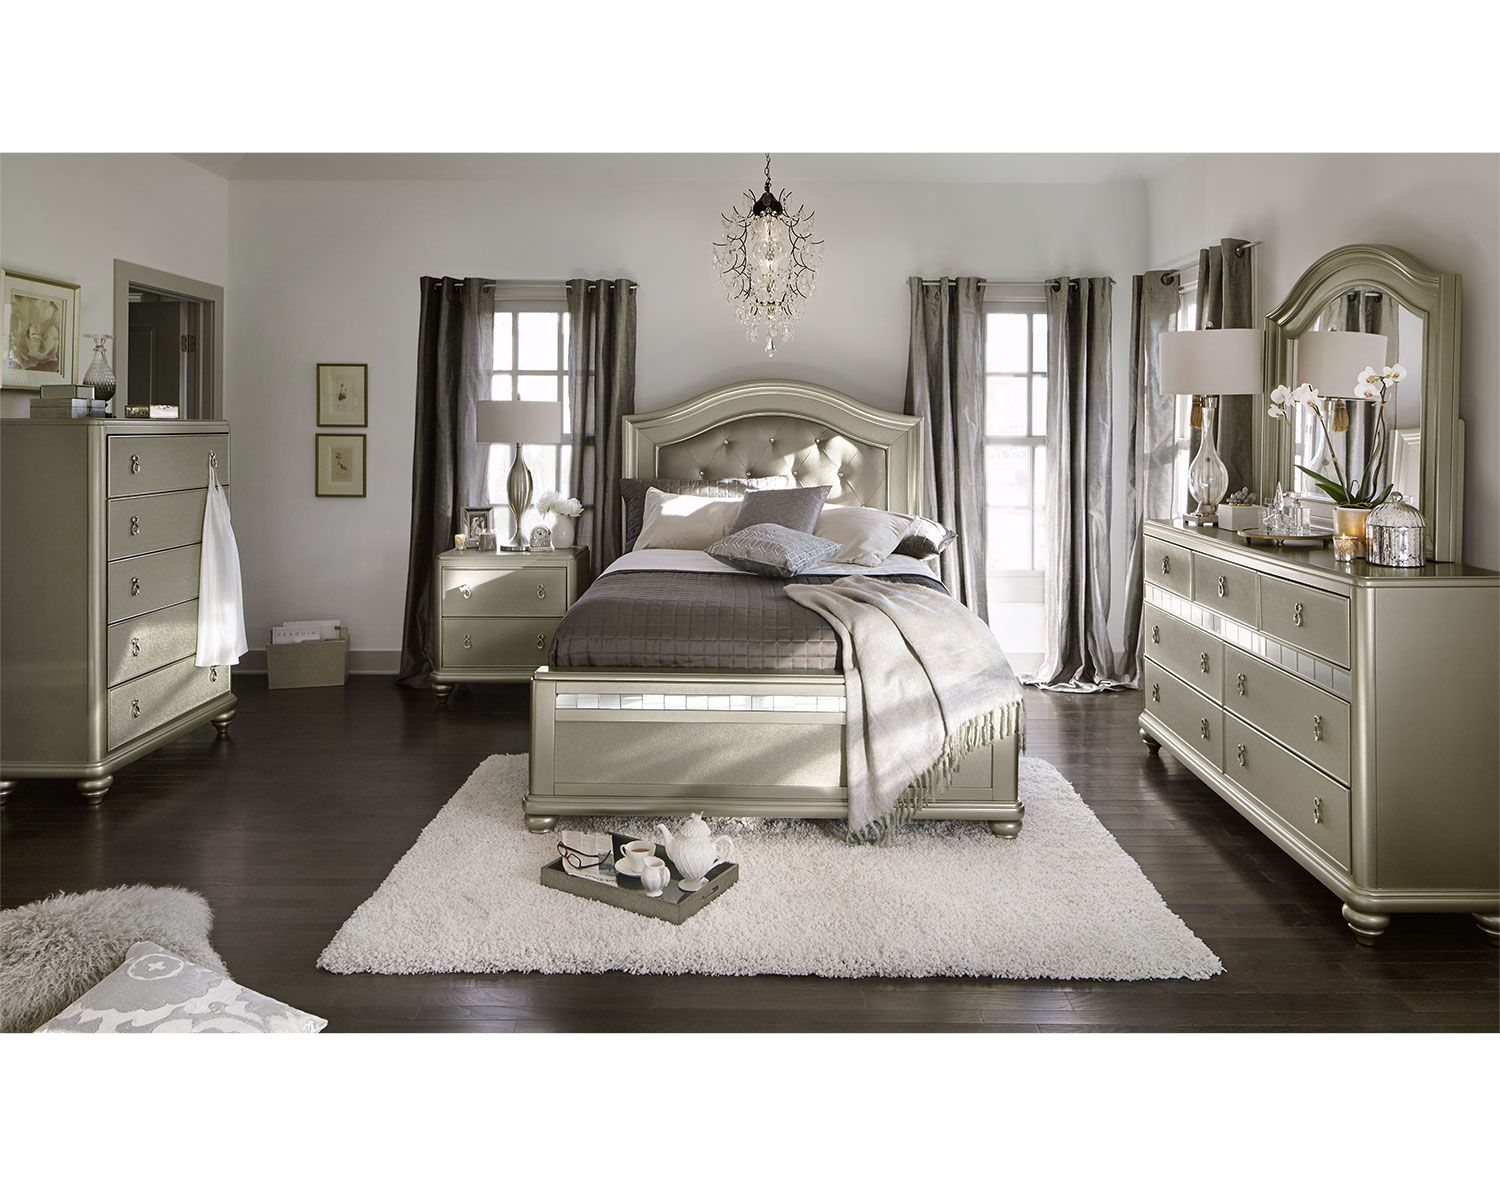 Platinum Resplendencethe Serena Bedroom Suite Offers An Air Of Classy Value City Furniture Bedroom Sets Design Inspiration